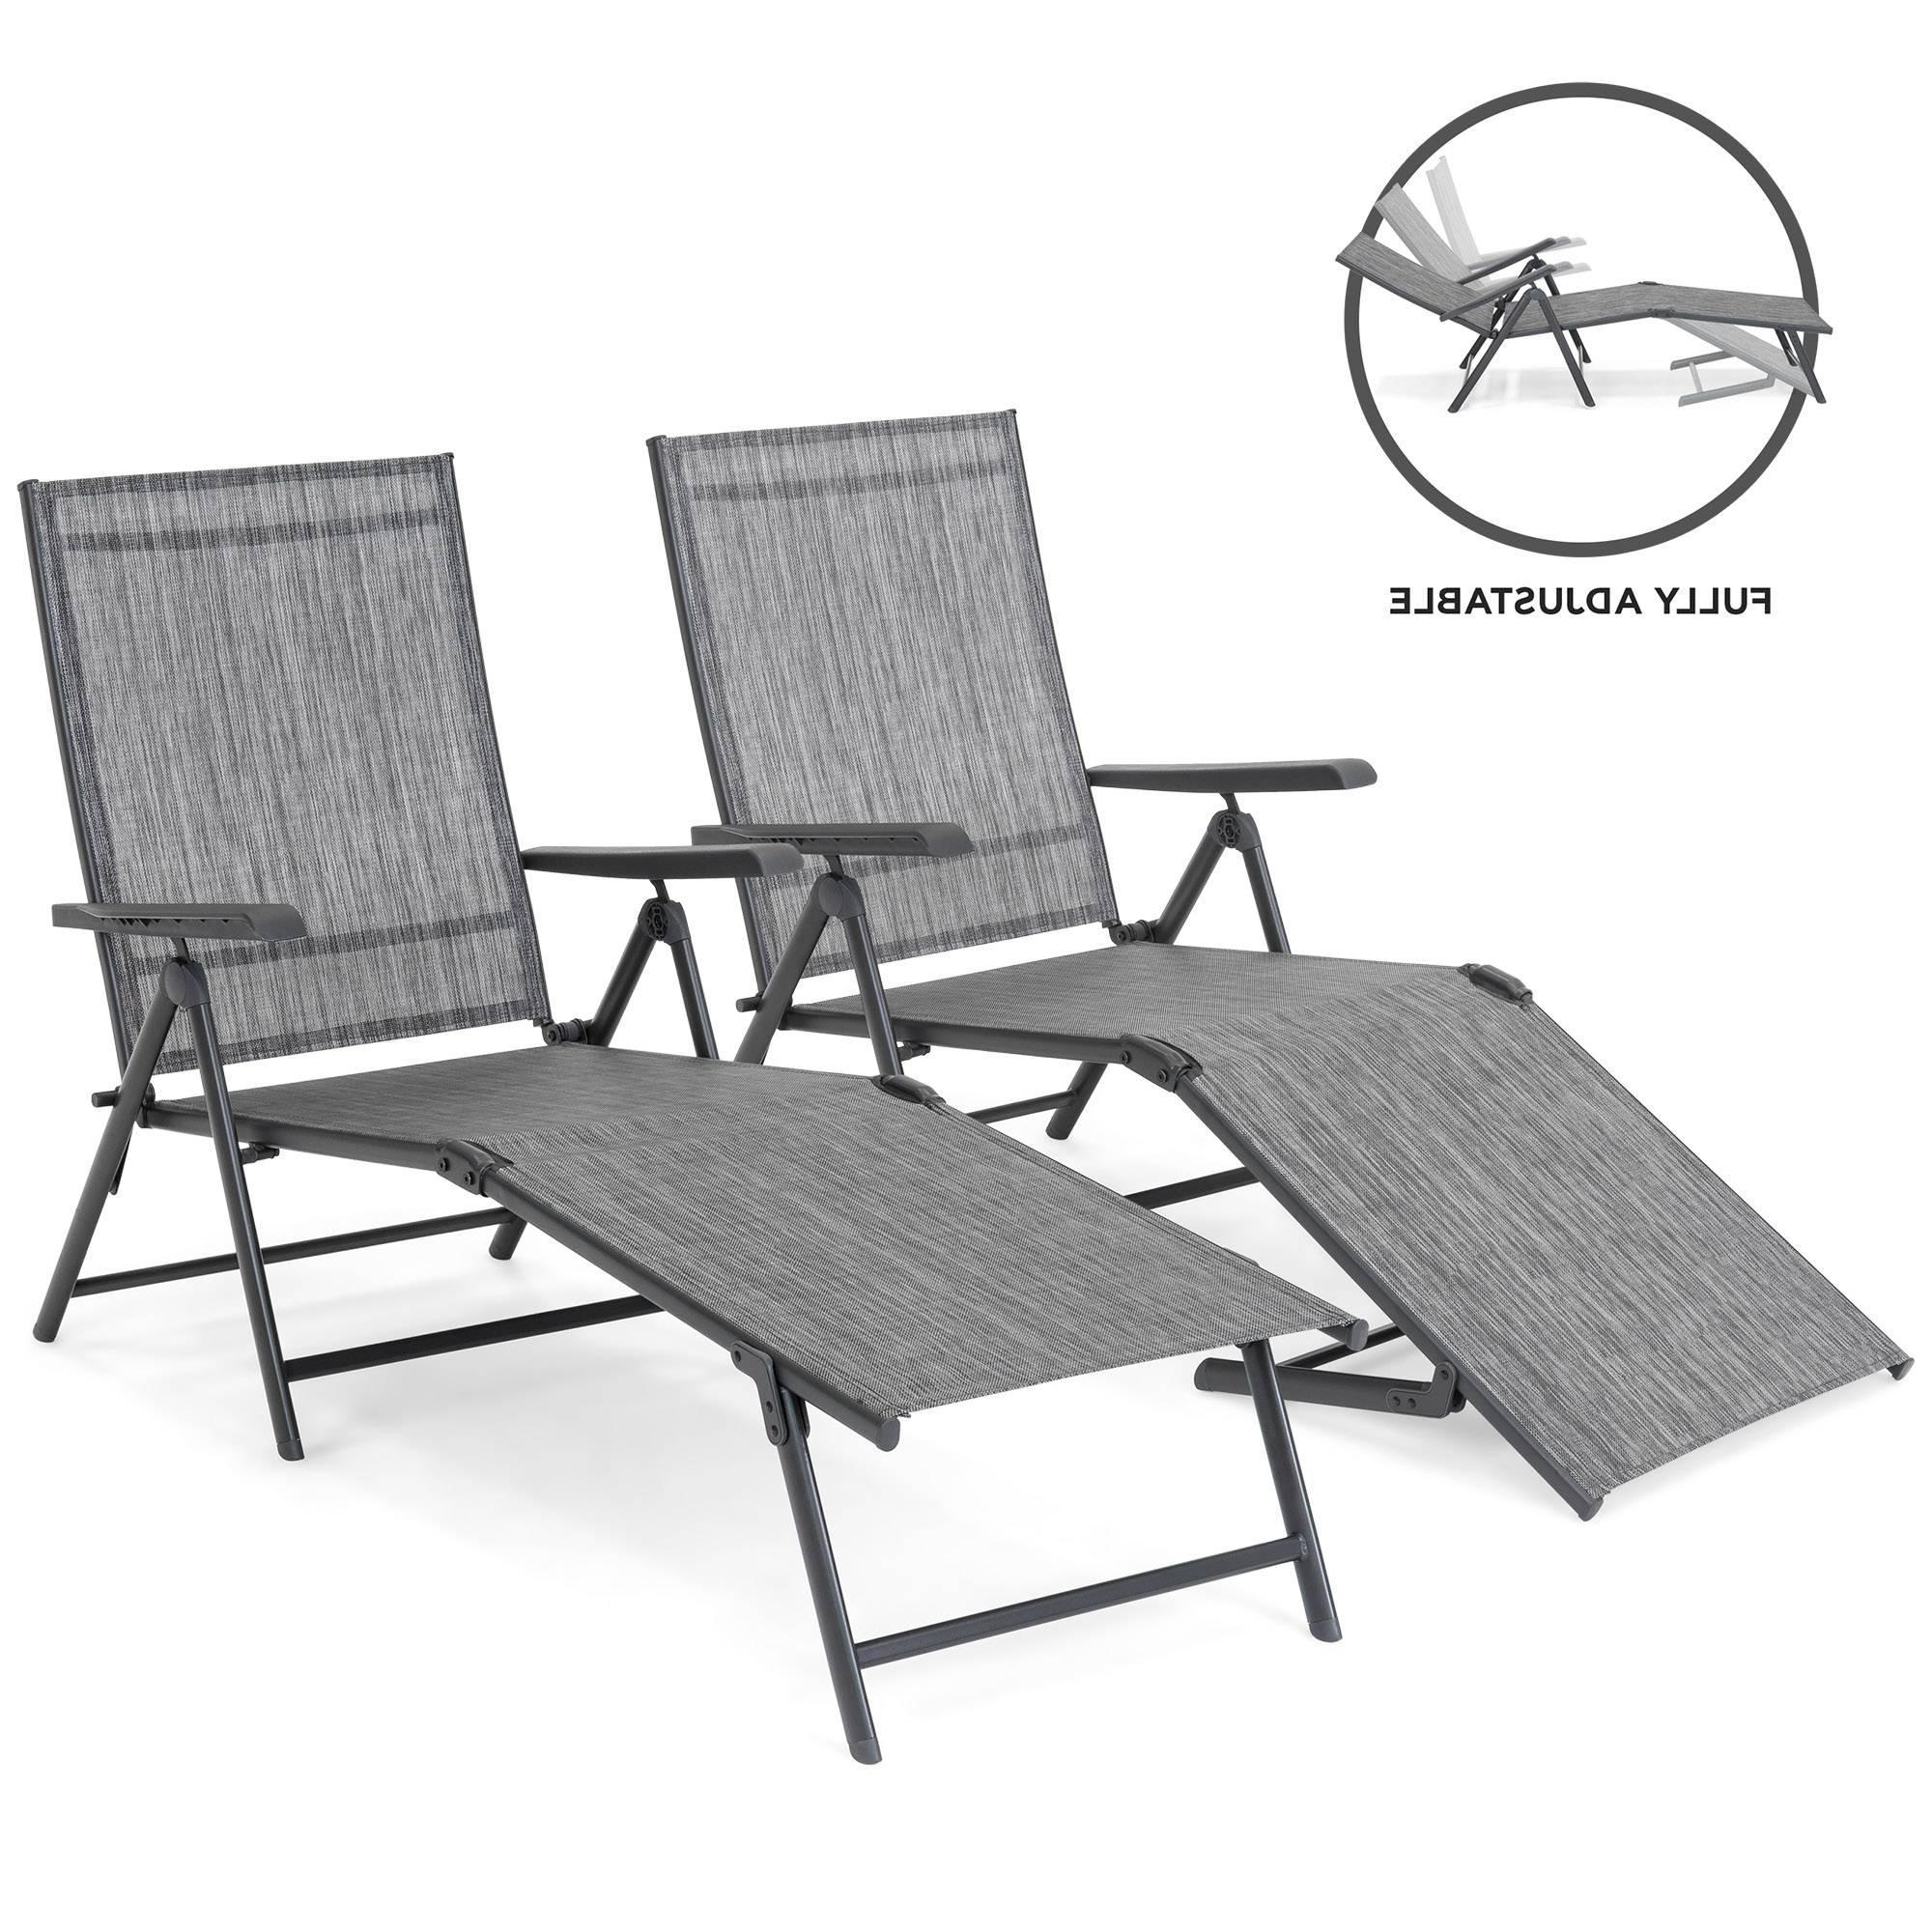 Best Choice Products Set Of 2 Outdoor Adjustable Folding Chaise Reclining Lounge Chairs For Patio, Poolside, Deck W/ Rust Resistant Steel Frame, In Popular Outdoor Cart Wheel Adjustable Chaise Lounge Chairs (Gallery 11 of 25)